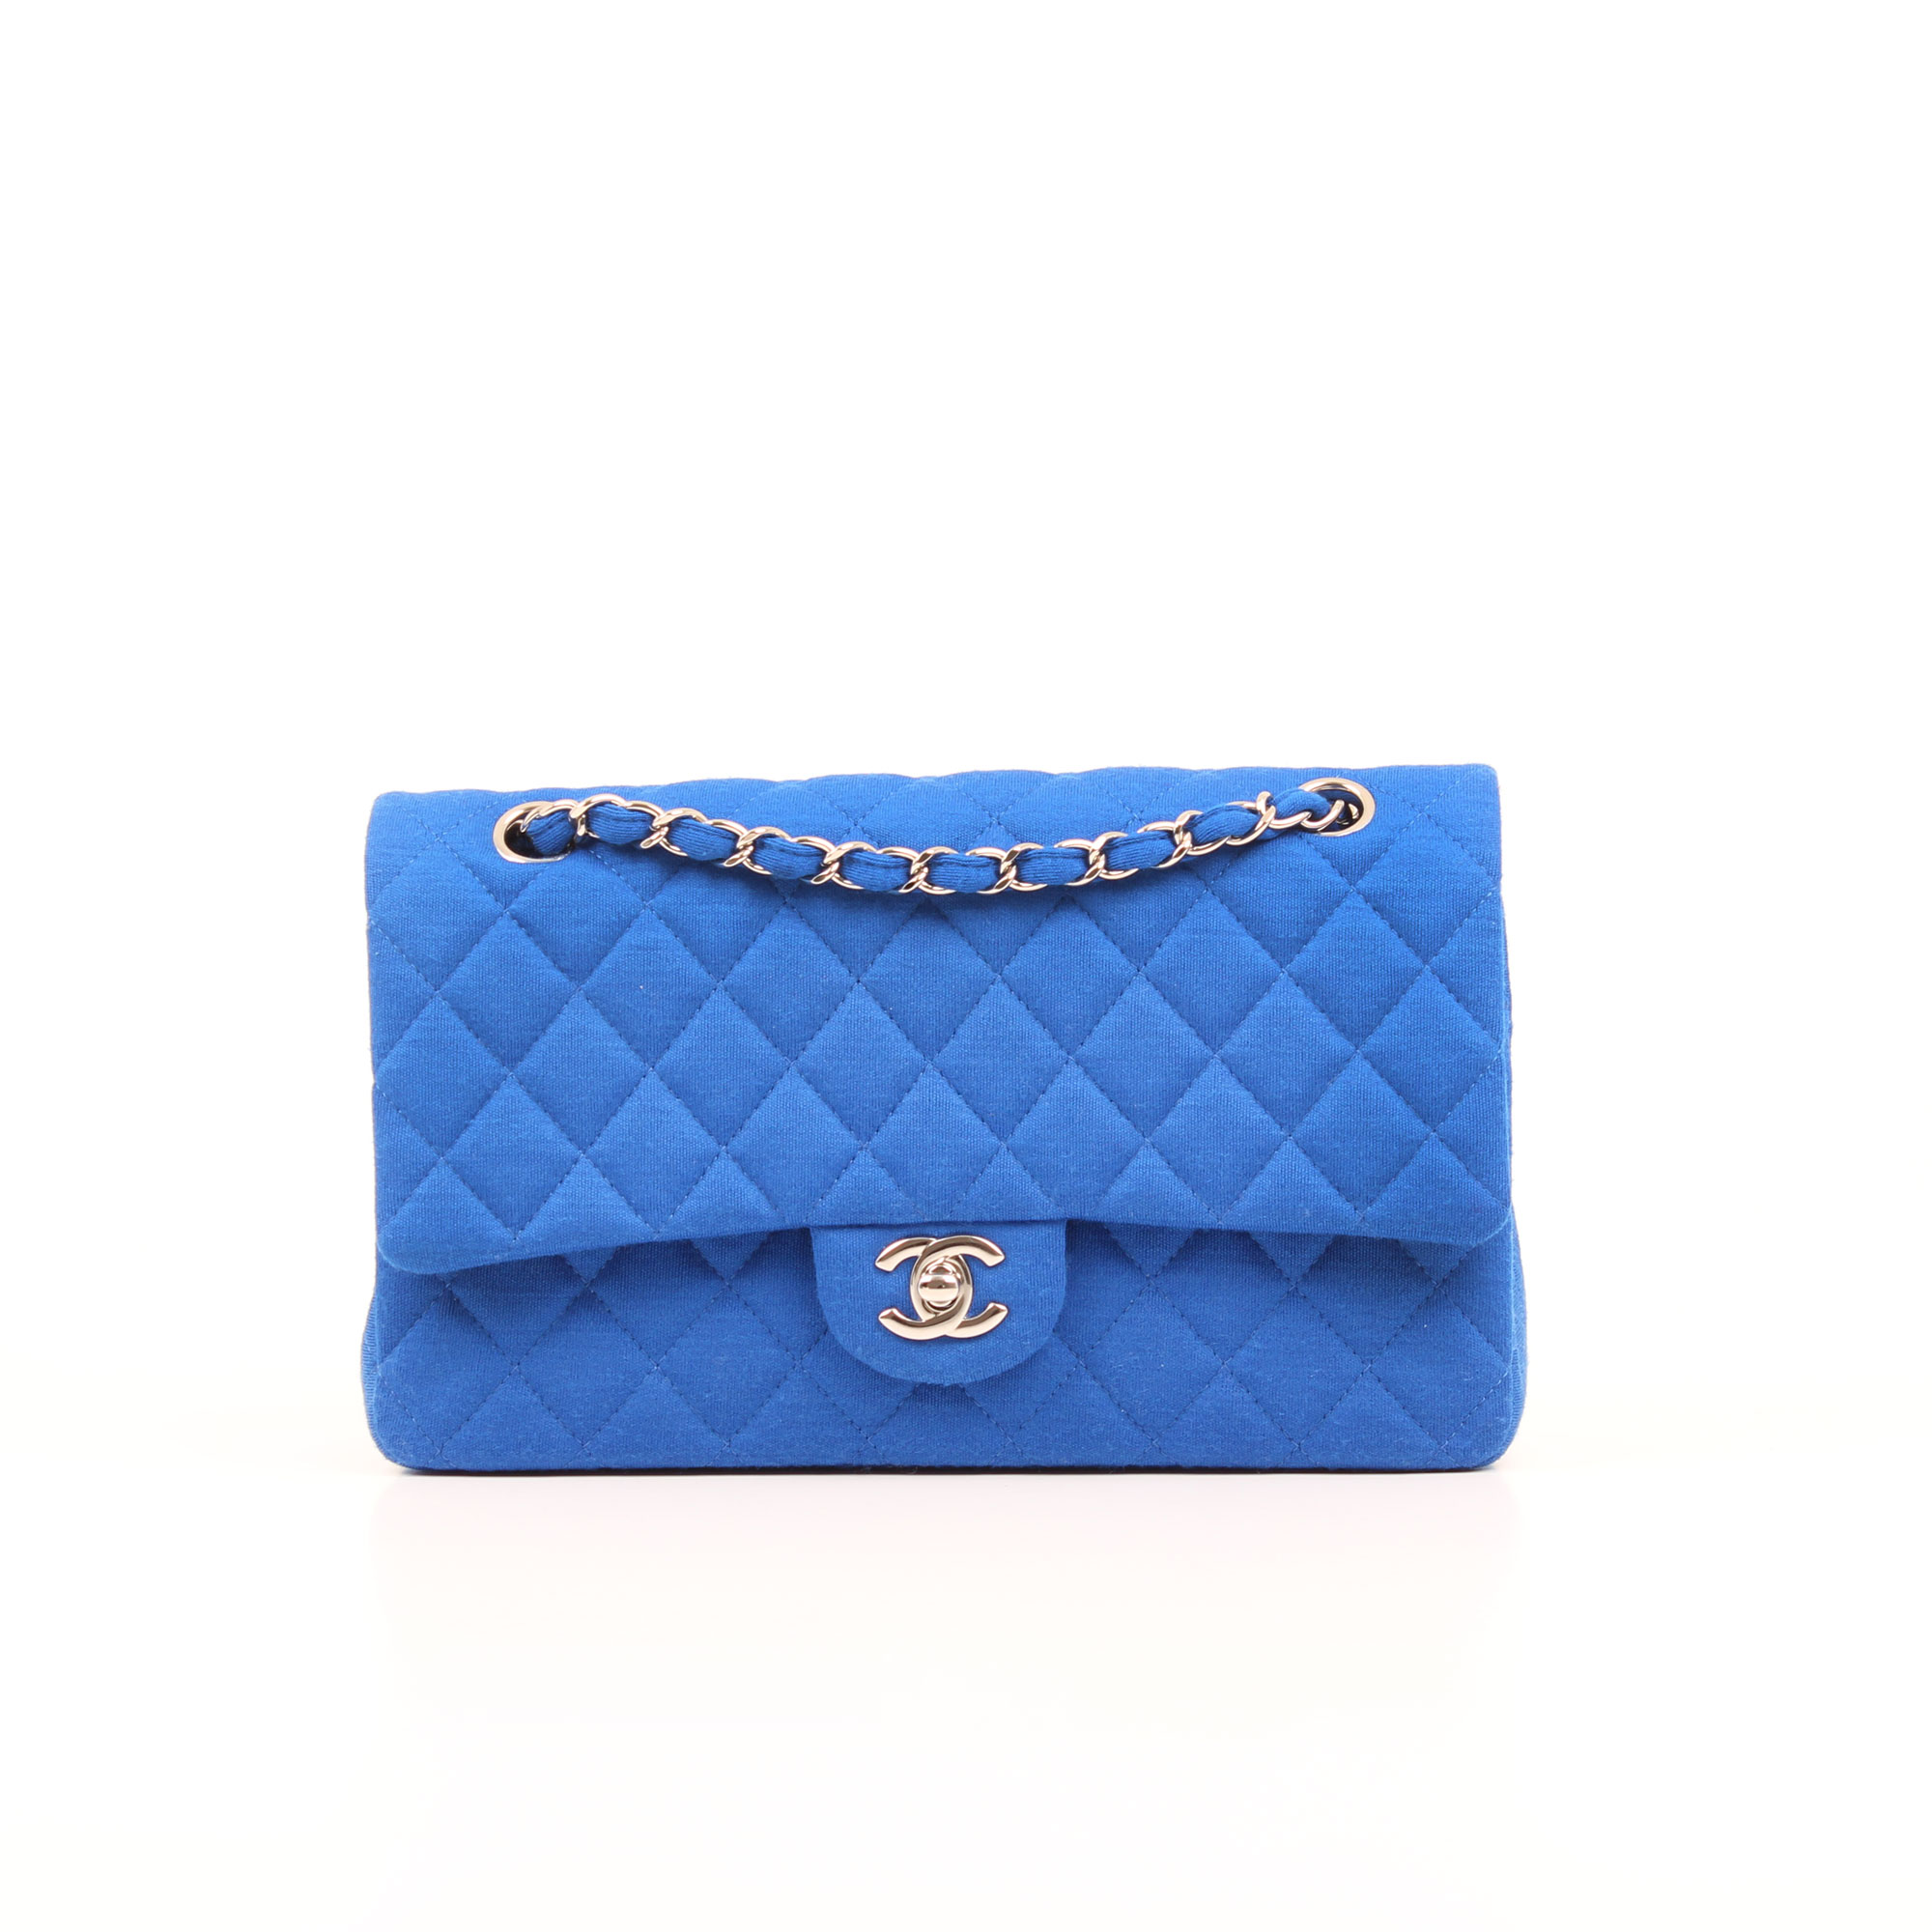 24dd45727e1b Jersey Quilted Timeless Double Flap Blue | CBL Bags